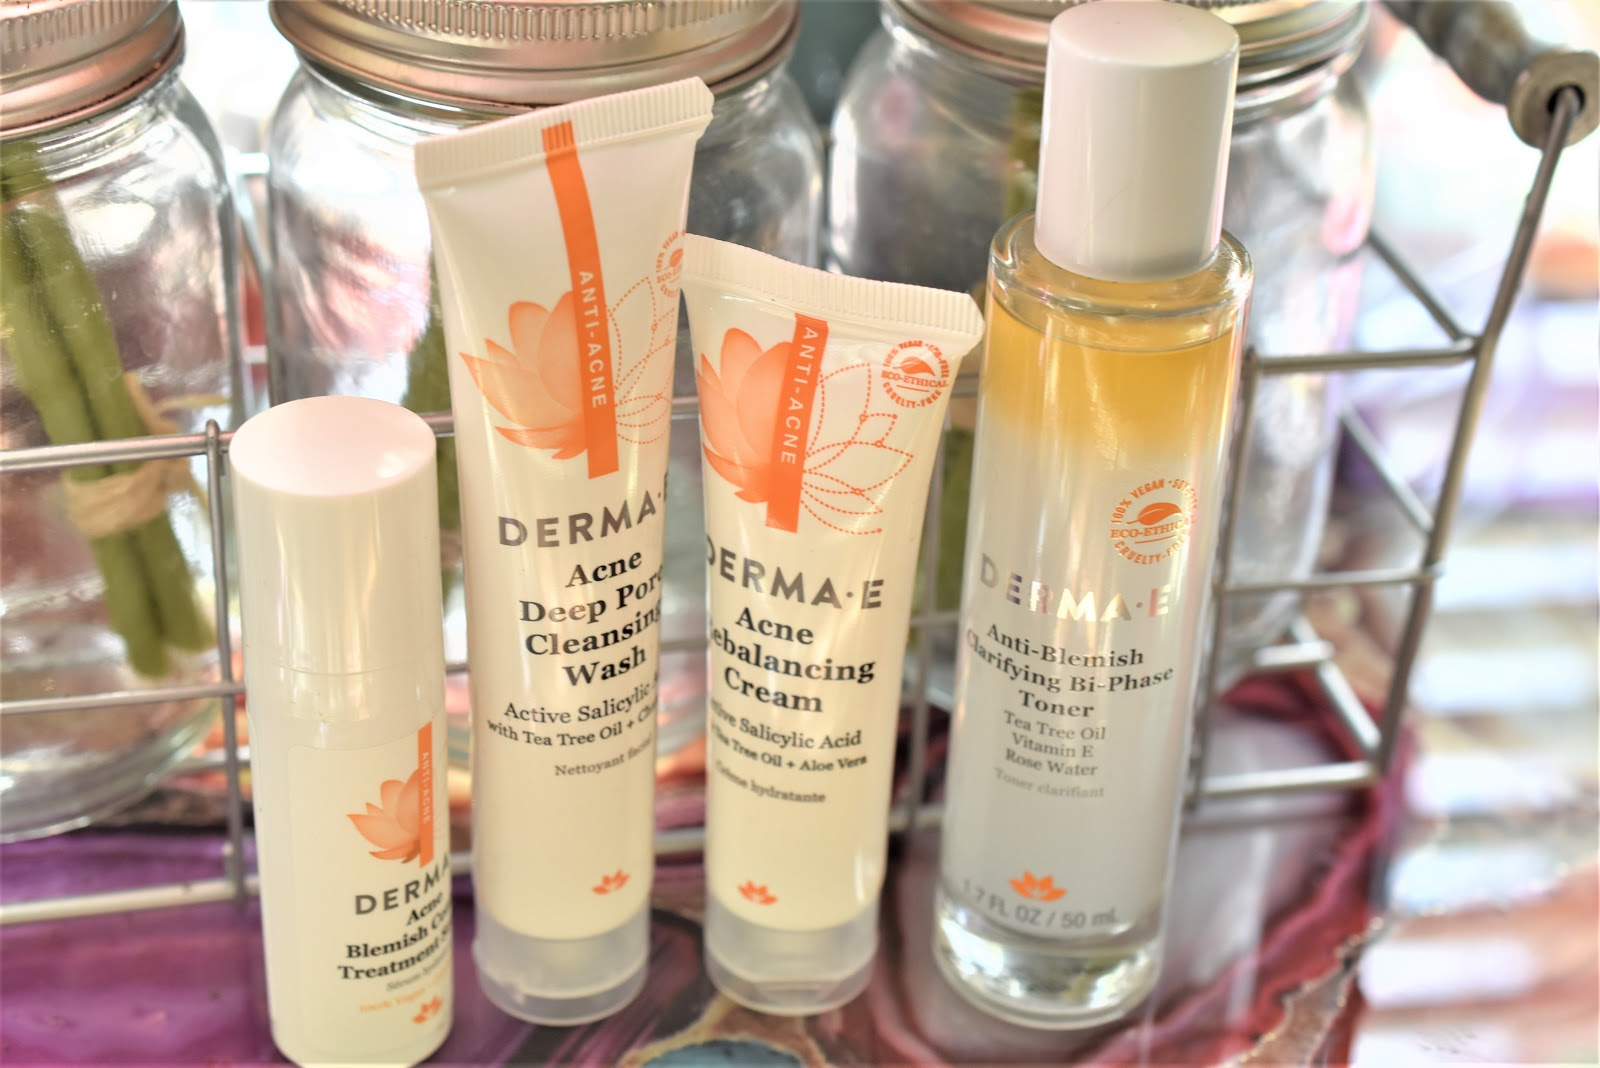 DERMA-E Anti-Acne Set